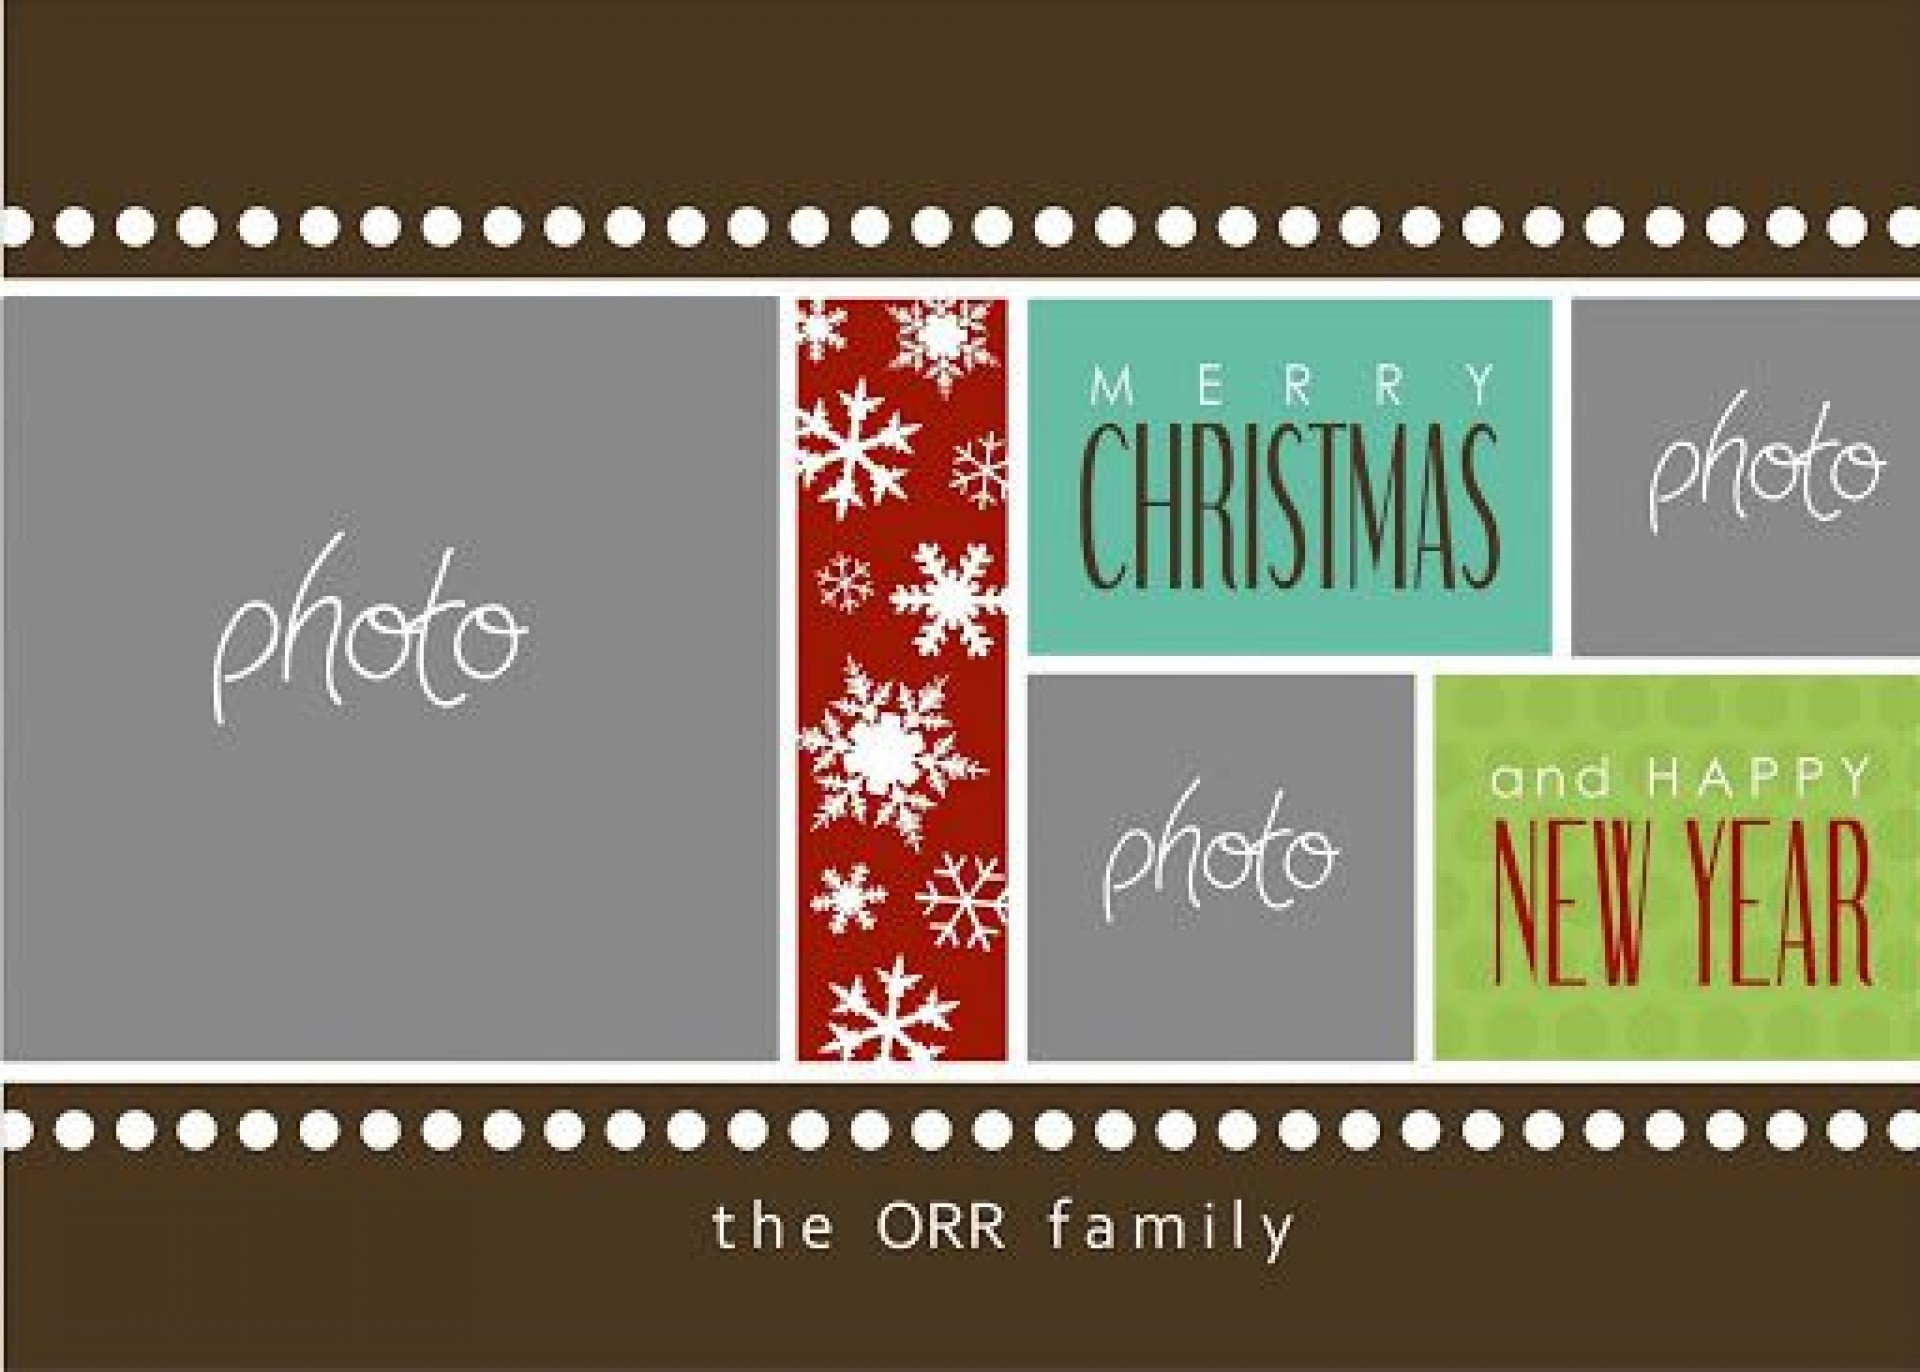 002 Wonderful Free Photo Christma Card Template Design  Templates For Photoshop Online1920